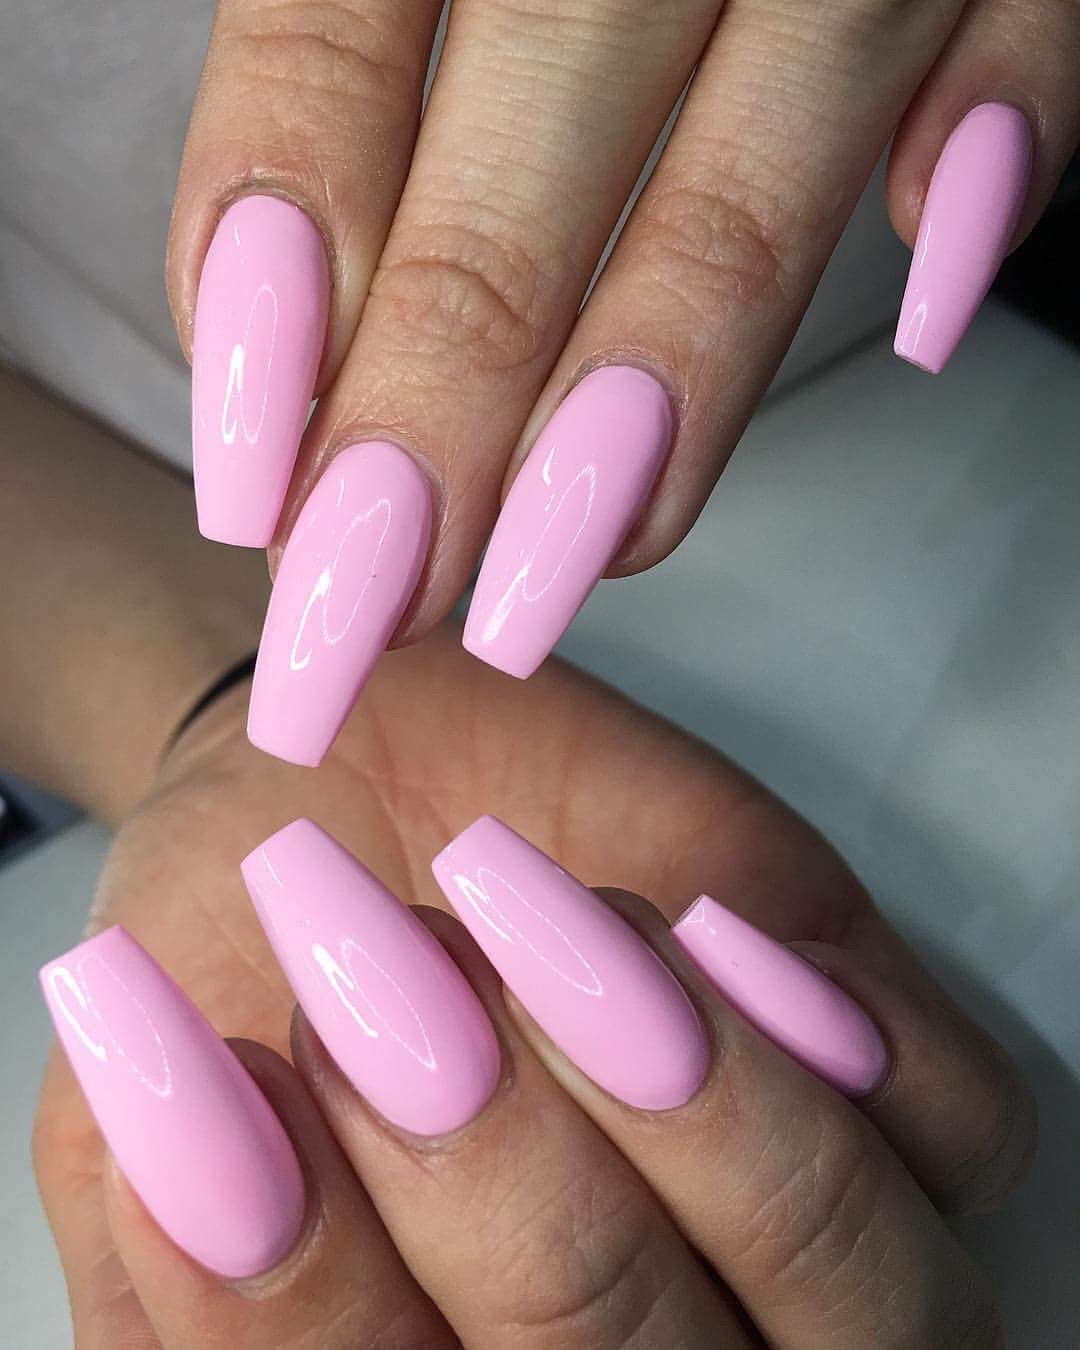 Pinterest Bmarryy Pink Glitter Nails Instagram Nails Pink Acrylic Nails